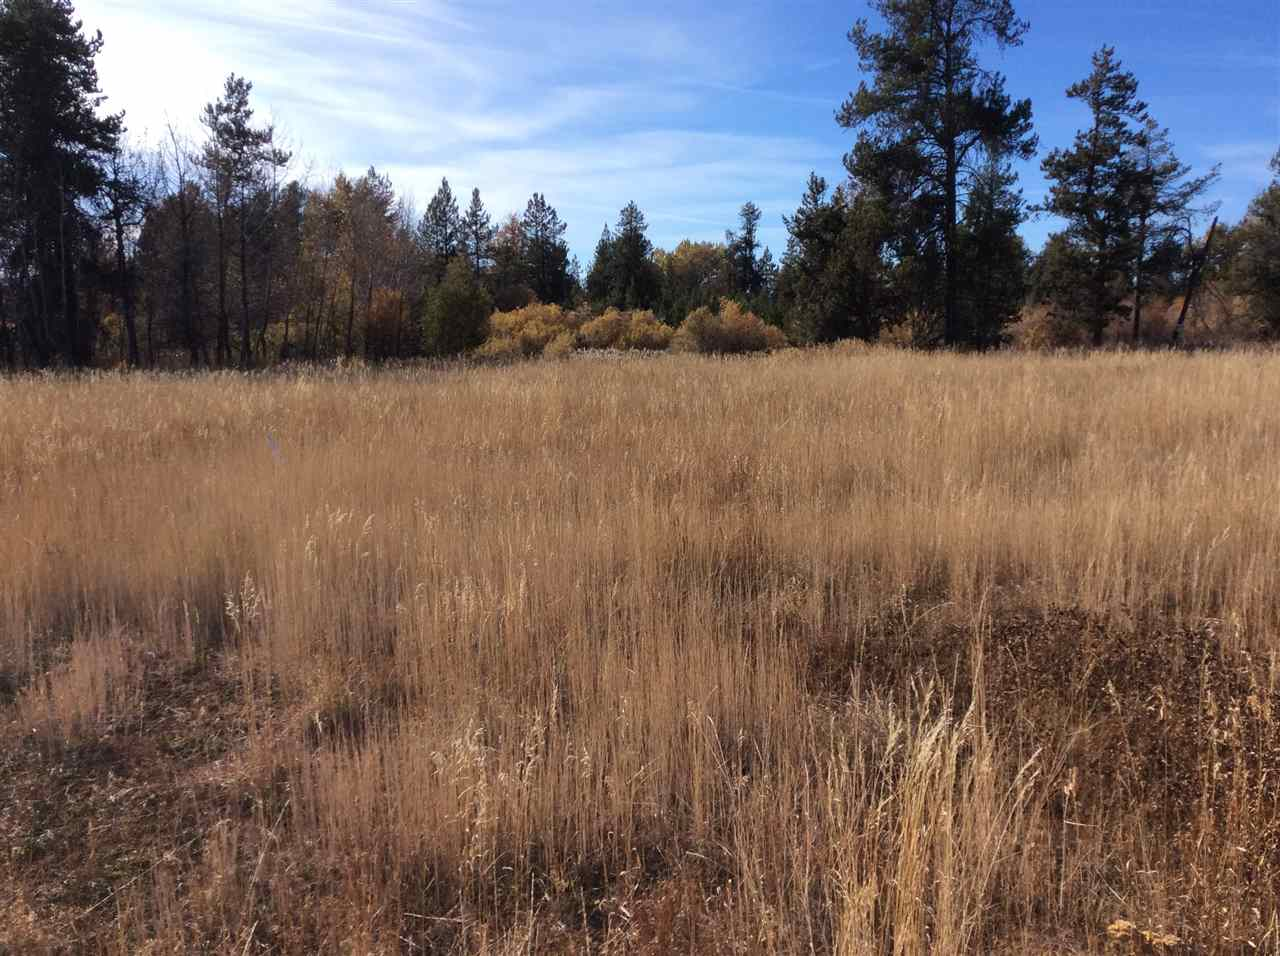 209 West Jug Road- McCall- Idaho 83638, Land For Sale, Price $103,000, 98673779